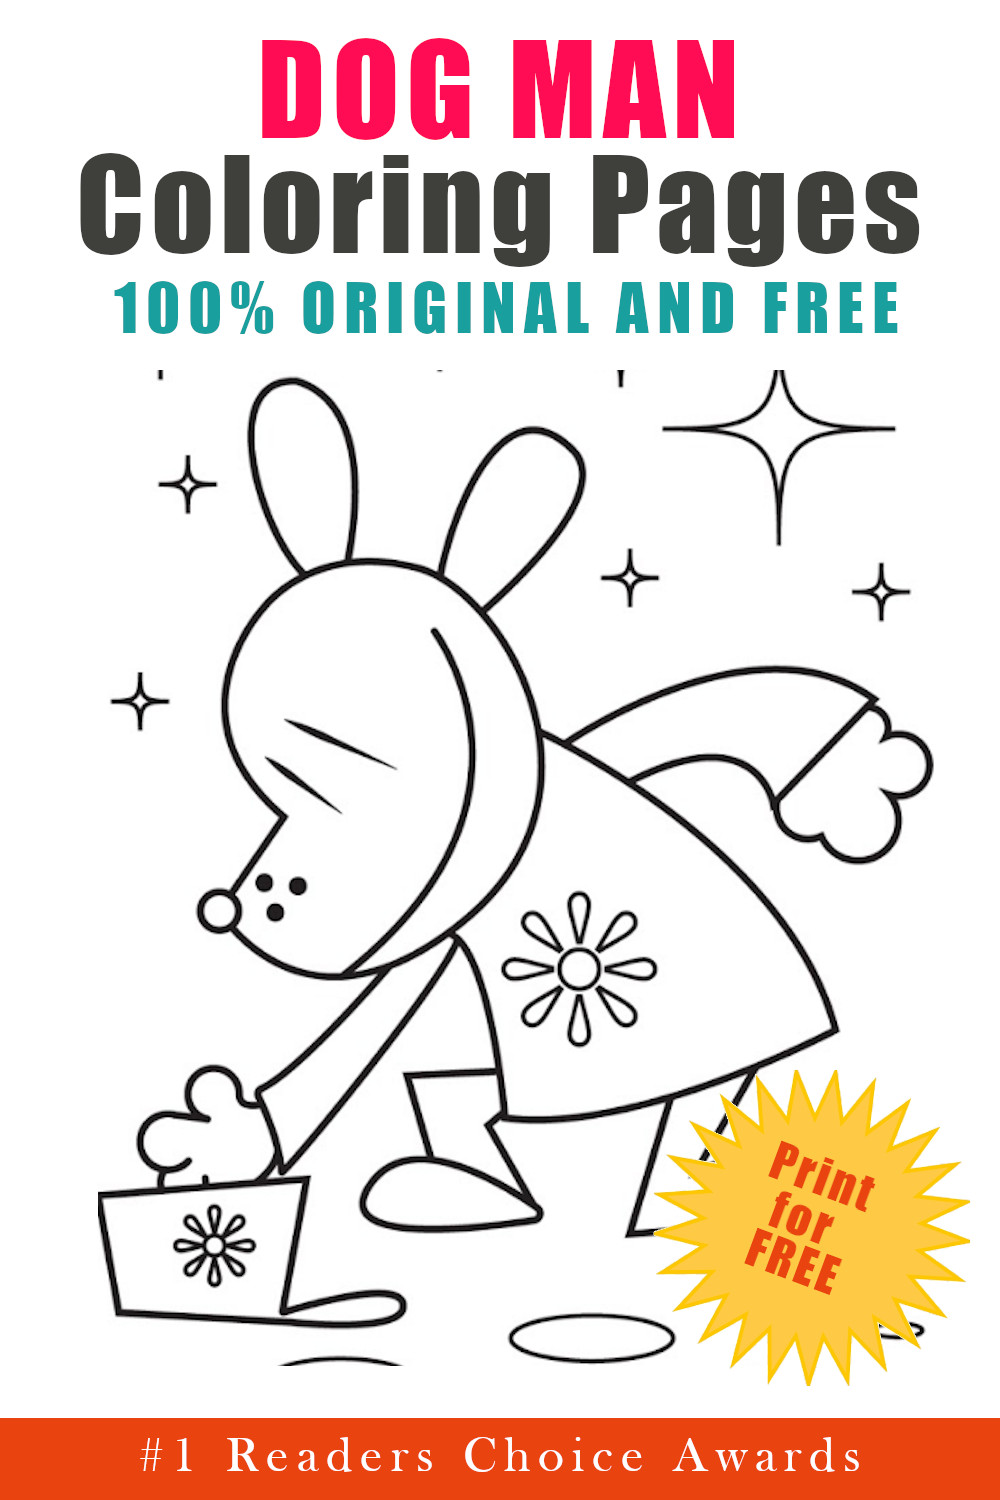 original and free dog man coloring pages